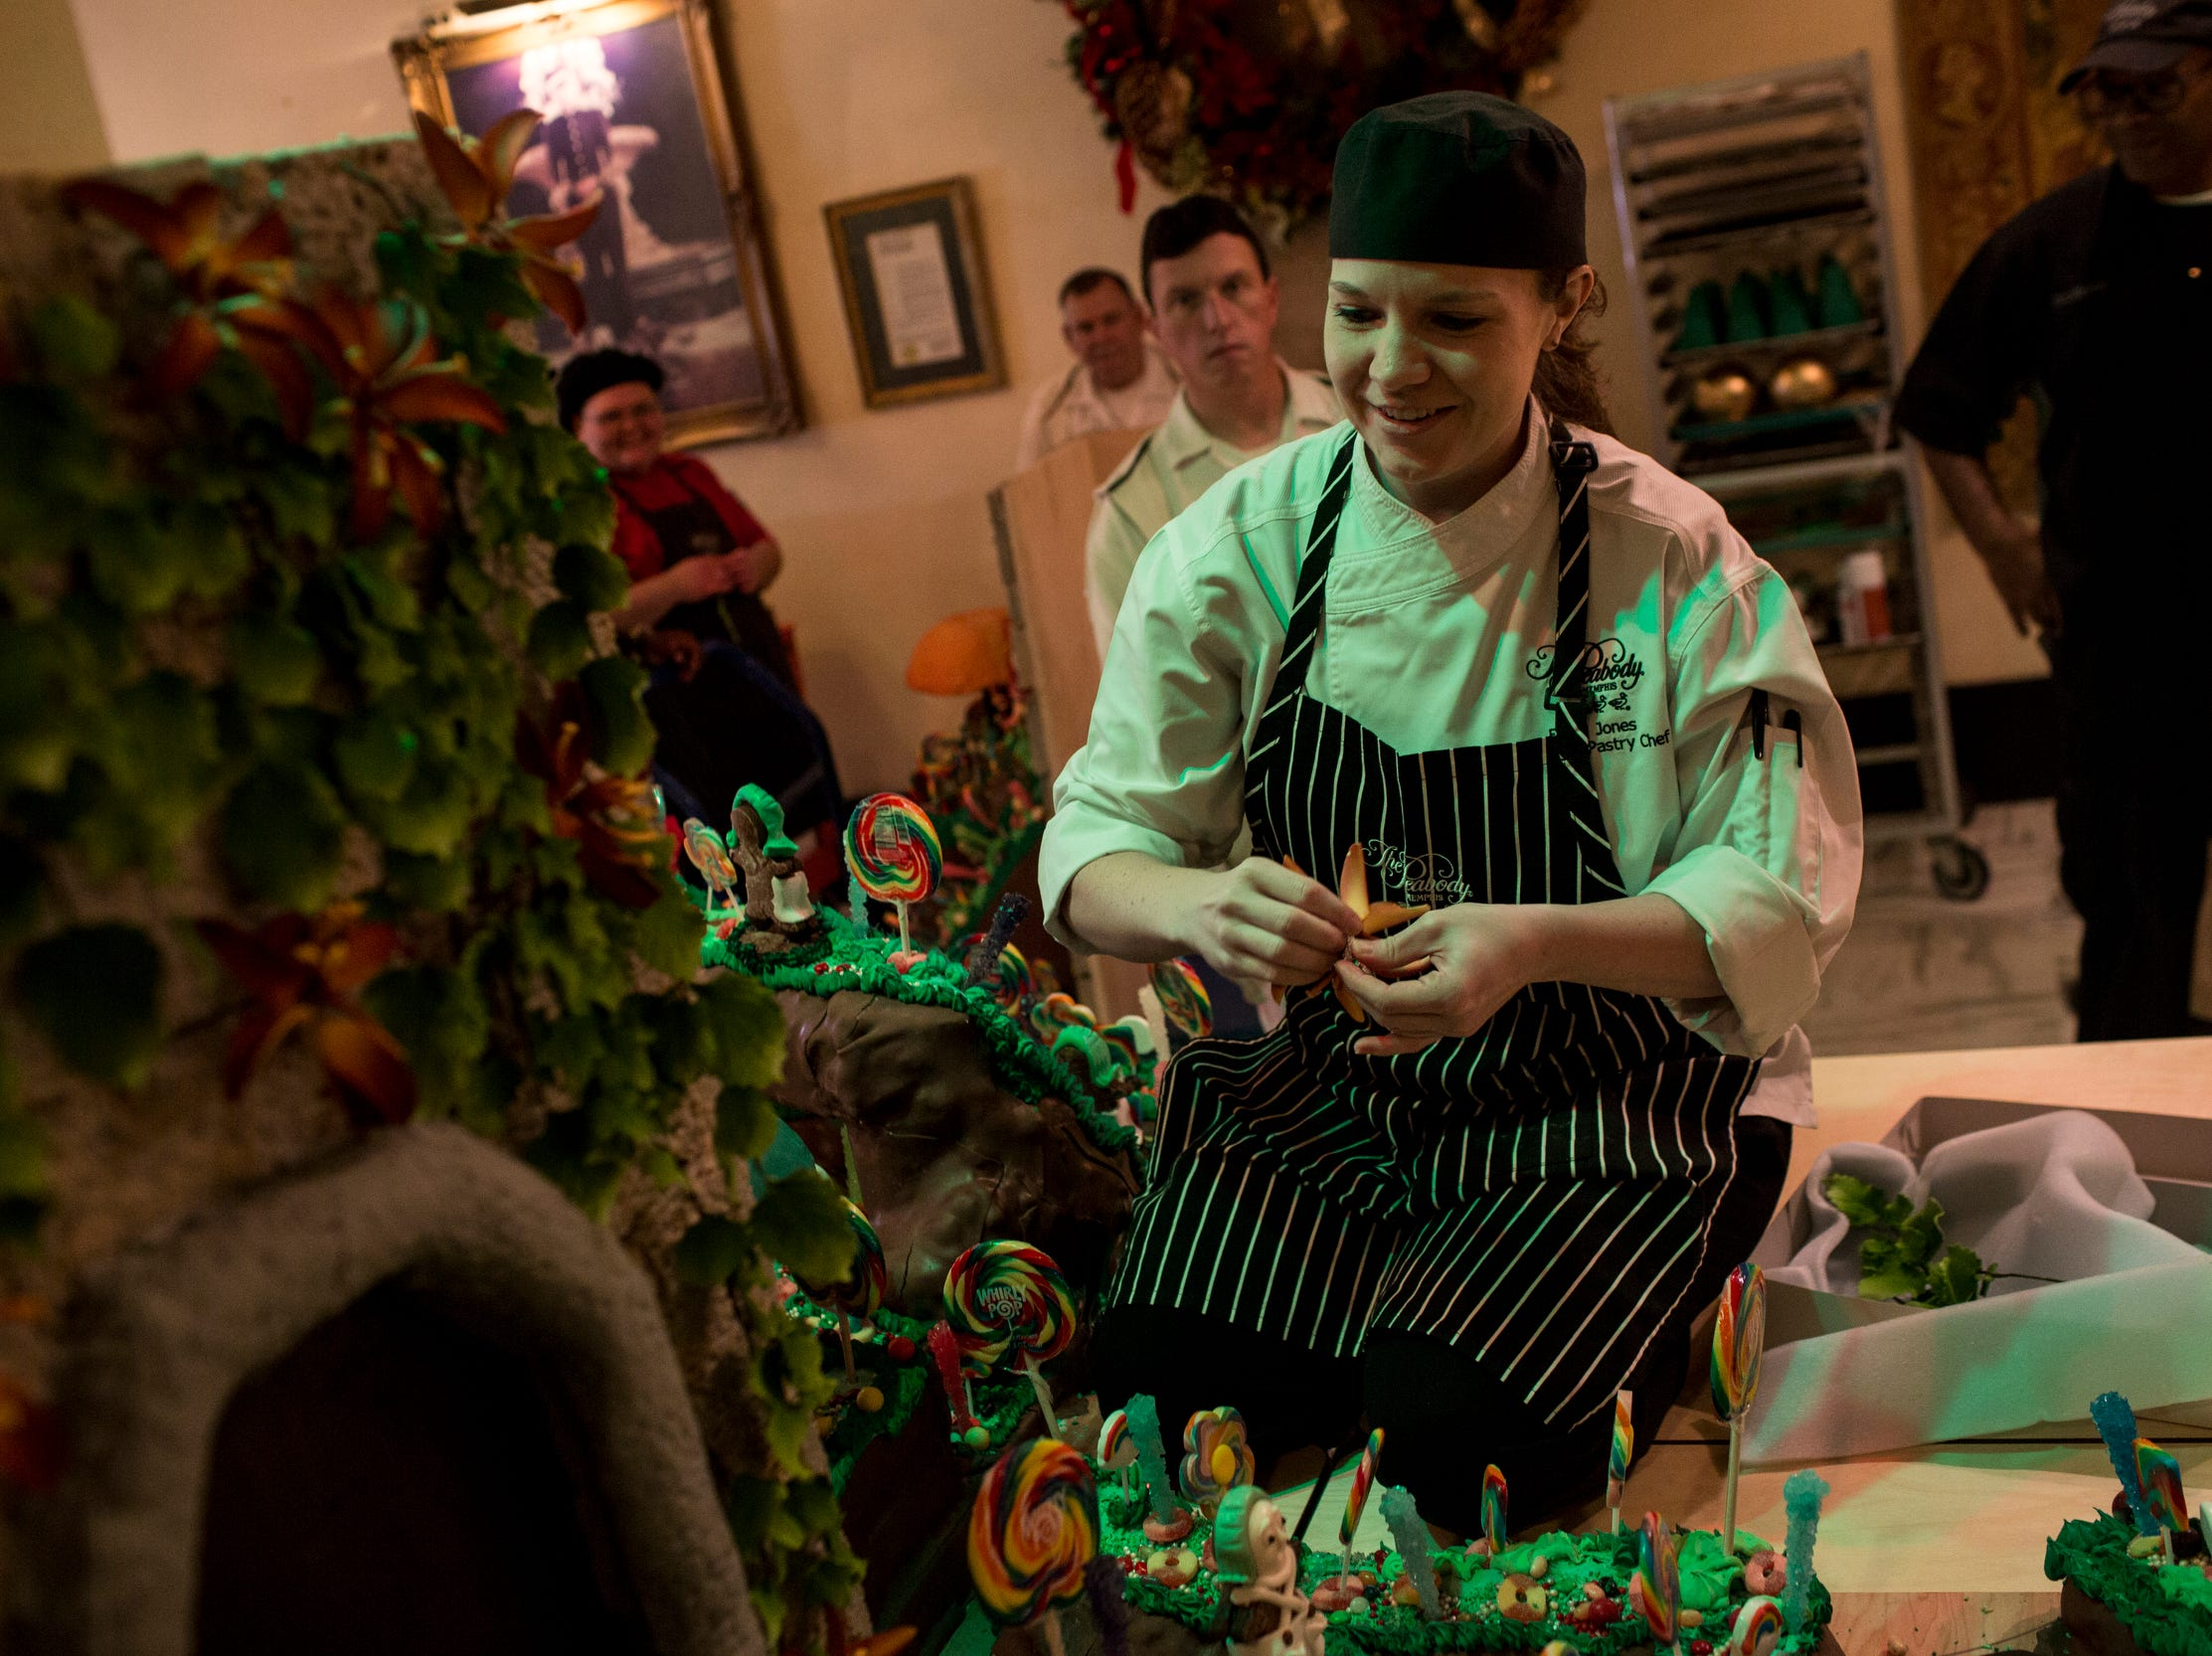 November 20 2018 - Elaine Jones, assistant pastry chef, adds details to the holiday gingerbread display at the Peabody Hotel. Chef Konrad Spitzbart does an elaborate holiday Gingerbread display every year that work is started on months in advance.